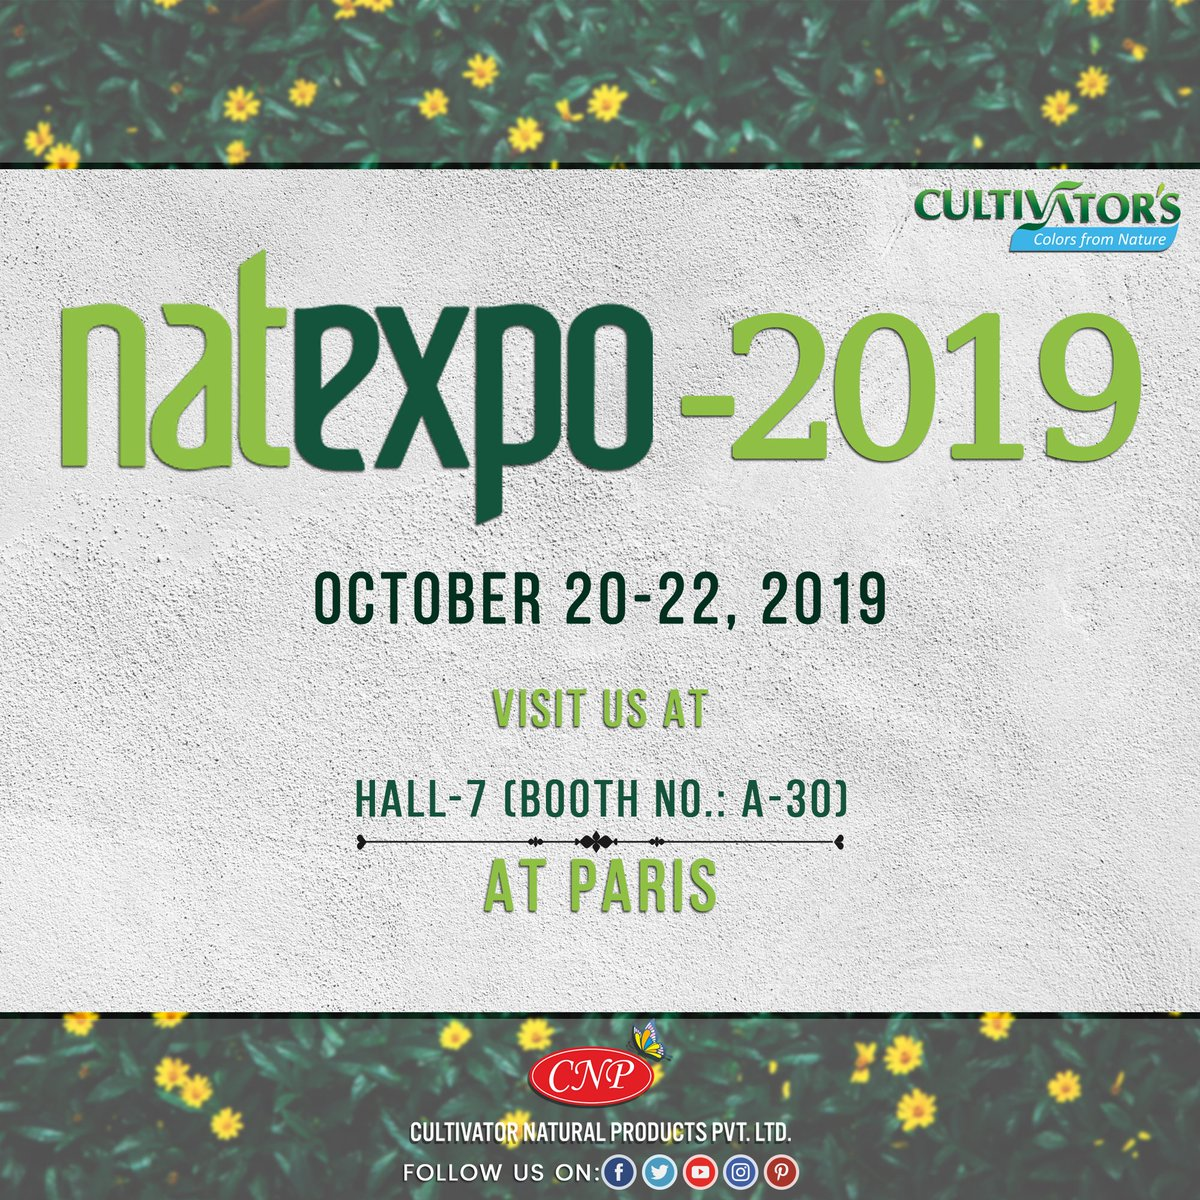 [INVITATION EXCLUSIVE📜]  . 🌿If you are going to the Natexpo trade show in Paris this weekend, kindly visit us at Hall 7 booth no. A-30,😇 We would love to share precious time with you all and to make you all discover the best ORGANIC products!😎 . The honor of your presence is requested!!🤩 . See ya!🥳 . . #natexpo2019 #organictradeshow #tradeshow #paris #organic #organicproducts #haircare #fashion #happyday